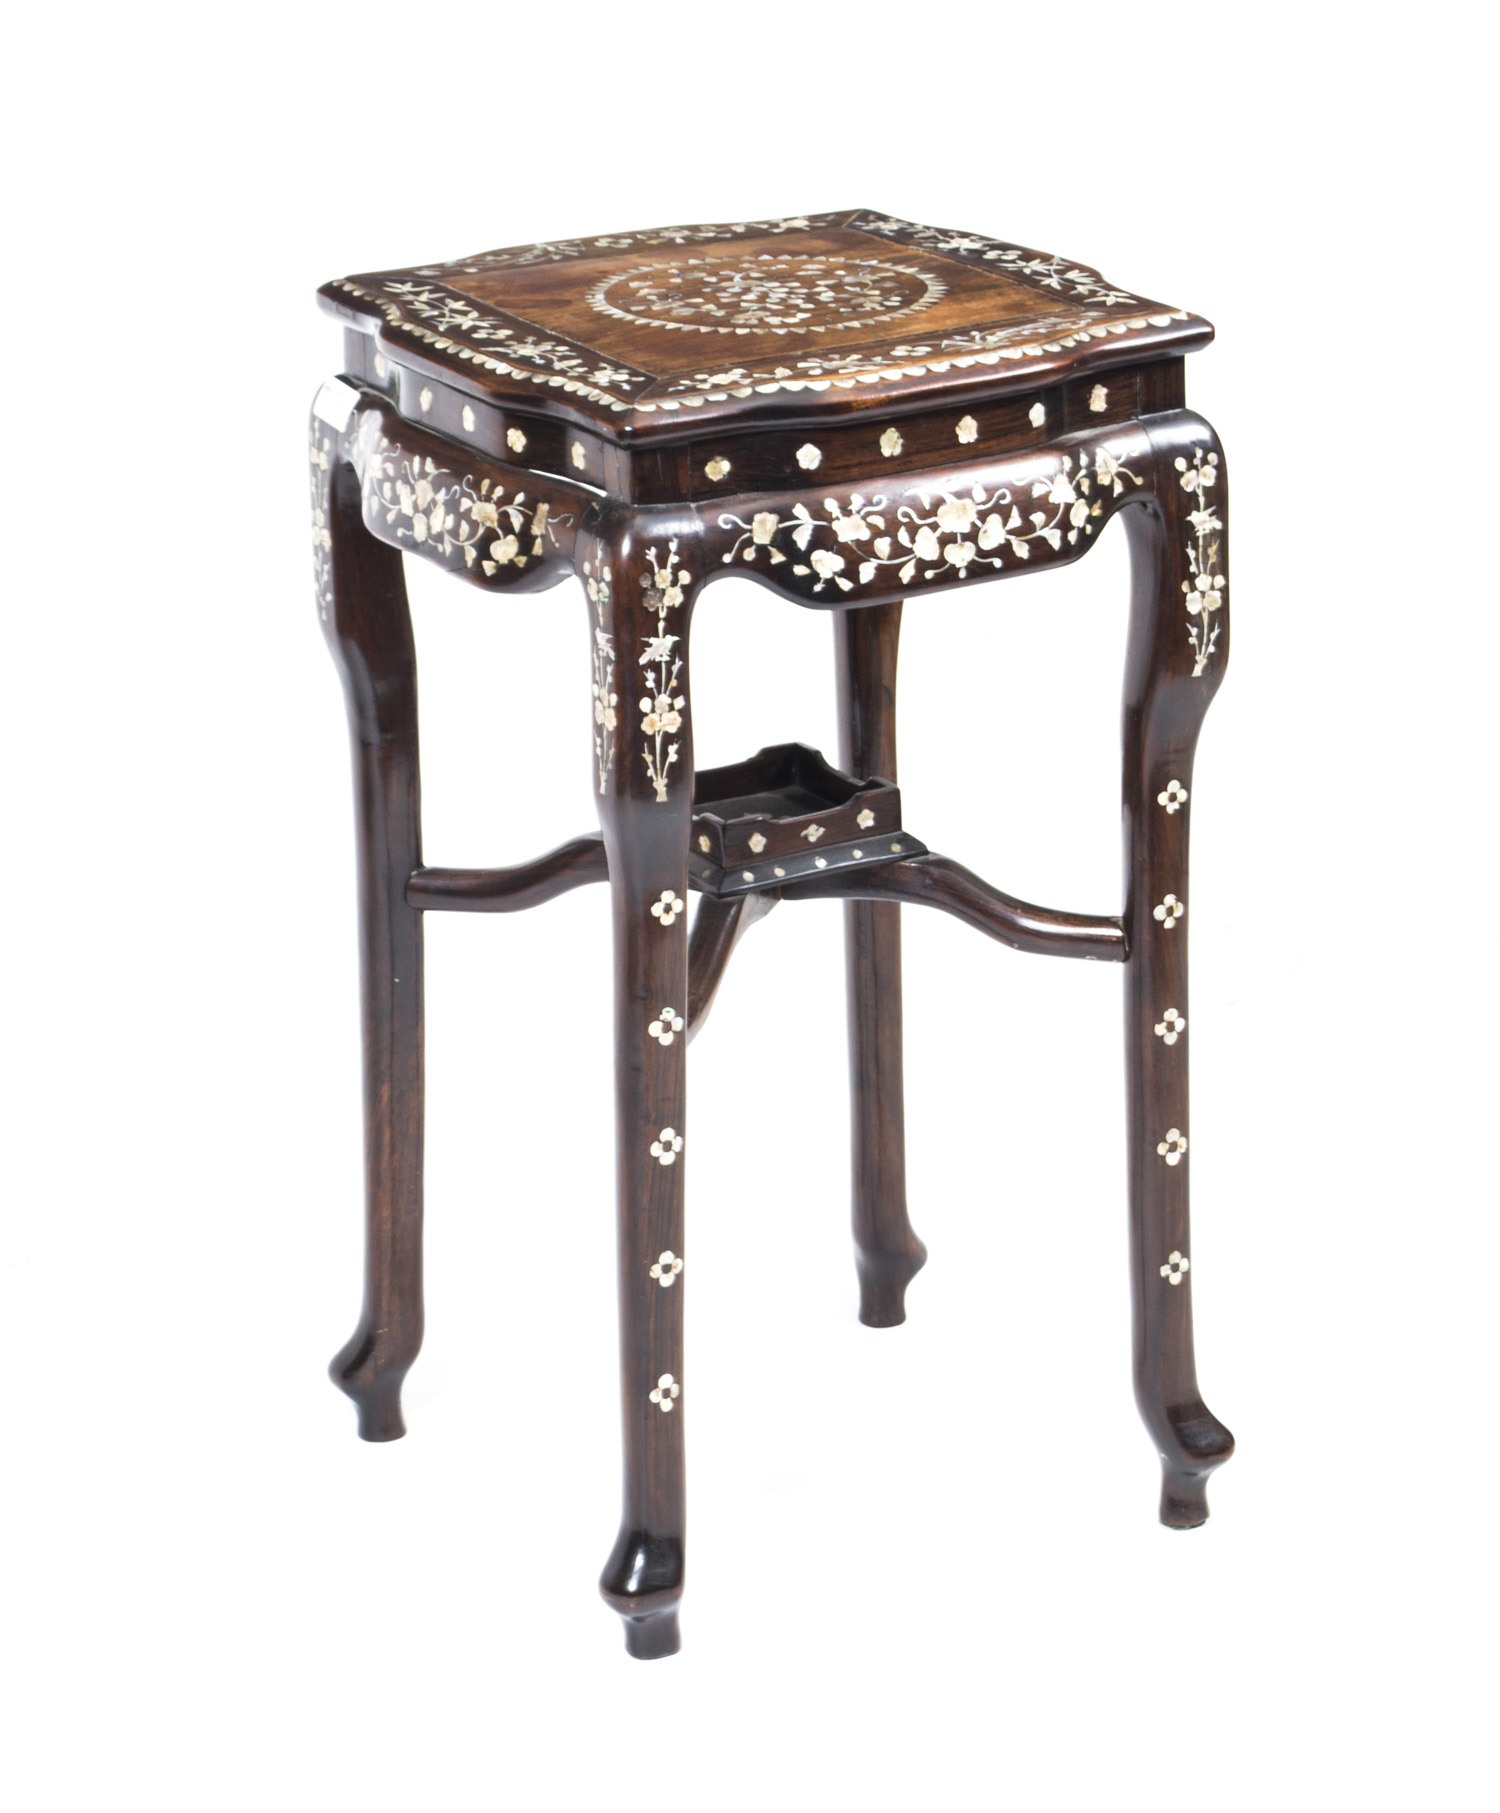 Antique Chinese Rosewood Furniture Antique Furniture